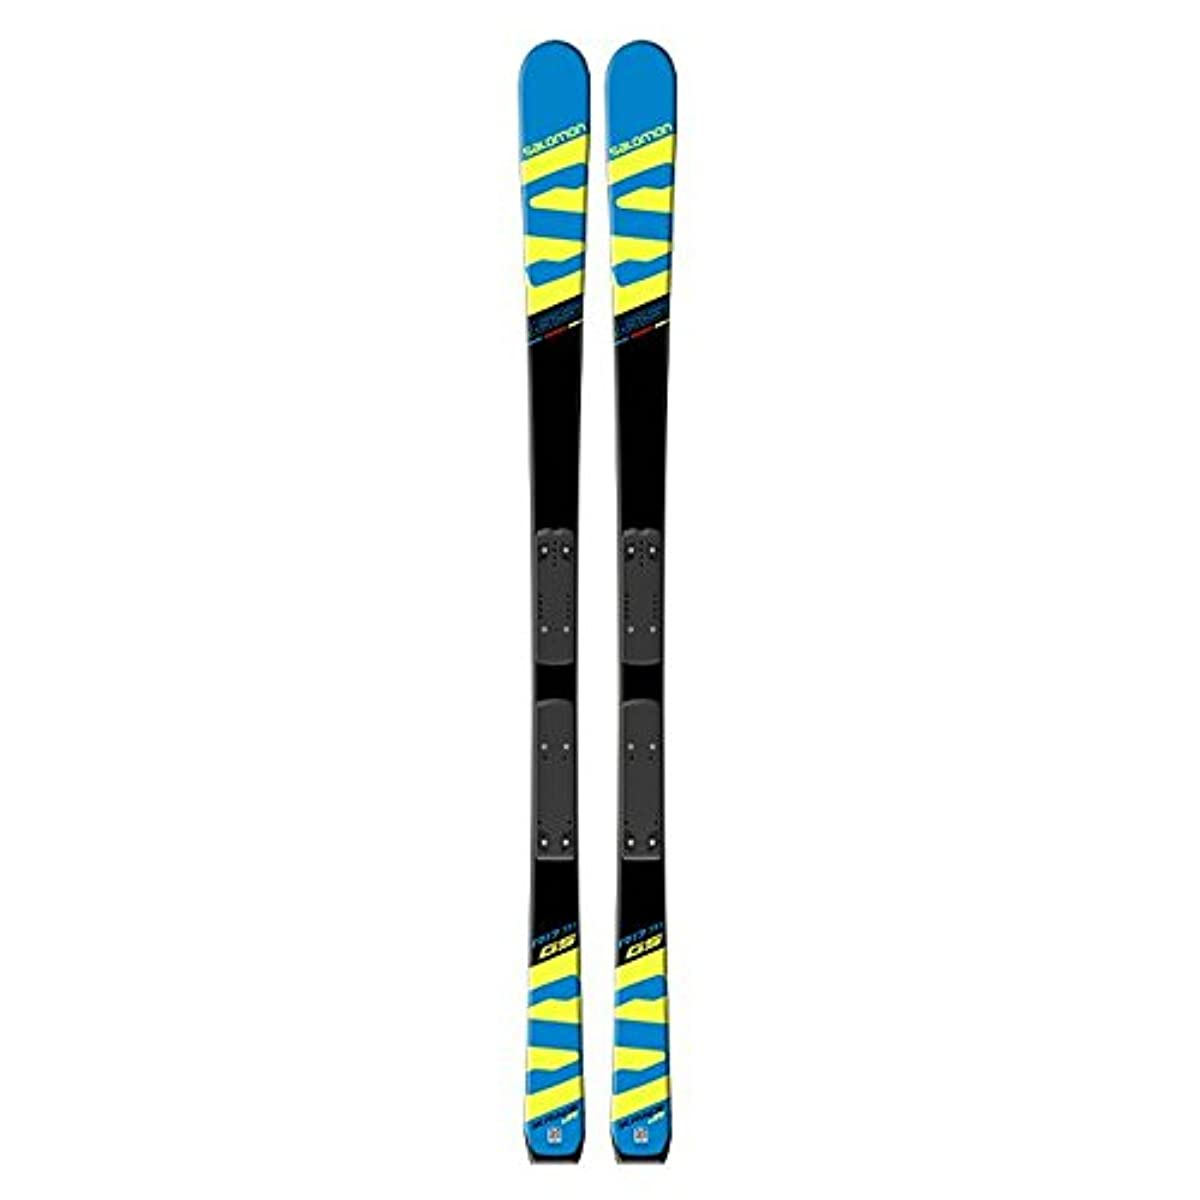 [해외] 2017-18 SALOMON 살로몬 X-RACE JR GS+RACE PLATEJR 152CM 쥬니어 GS 레이싱 SKI판 만